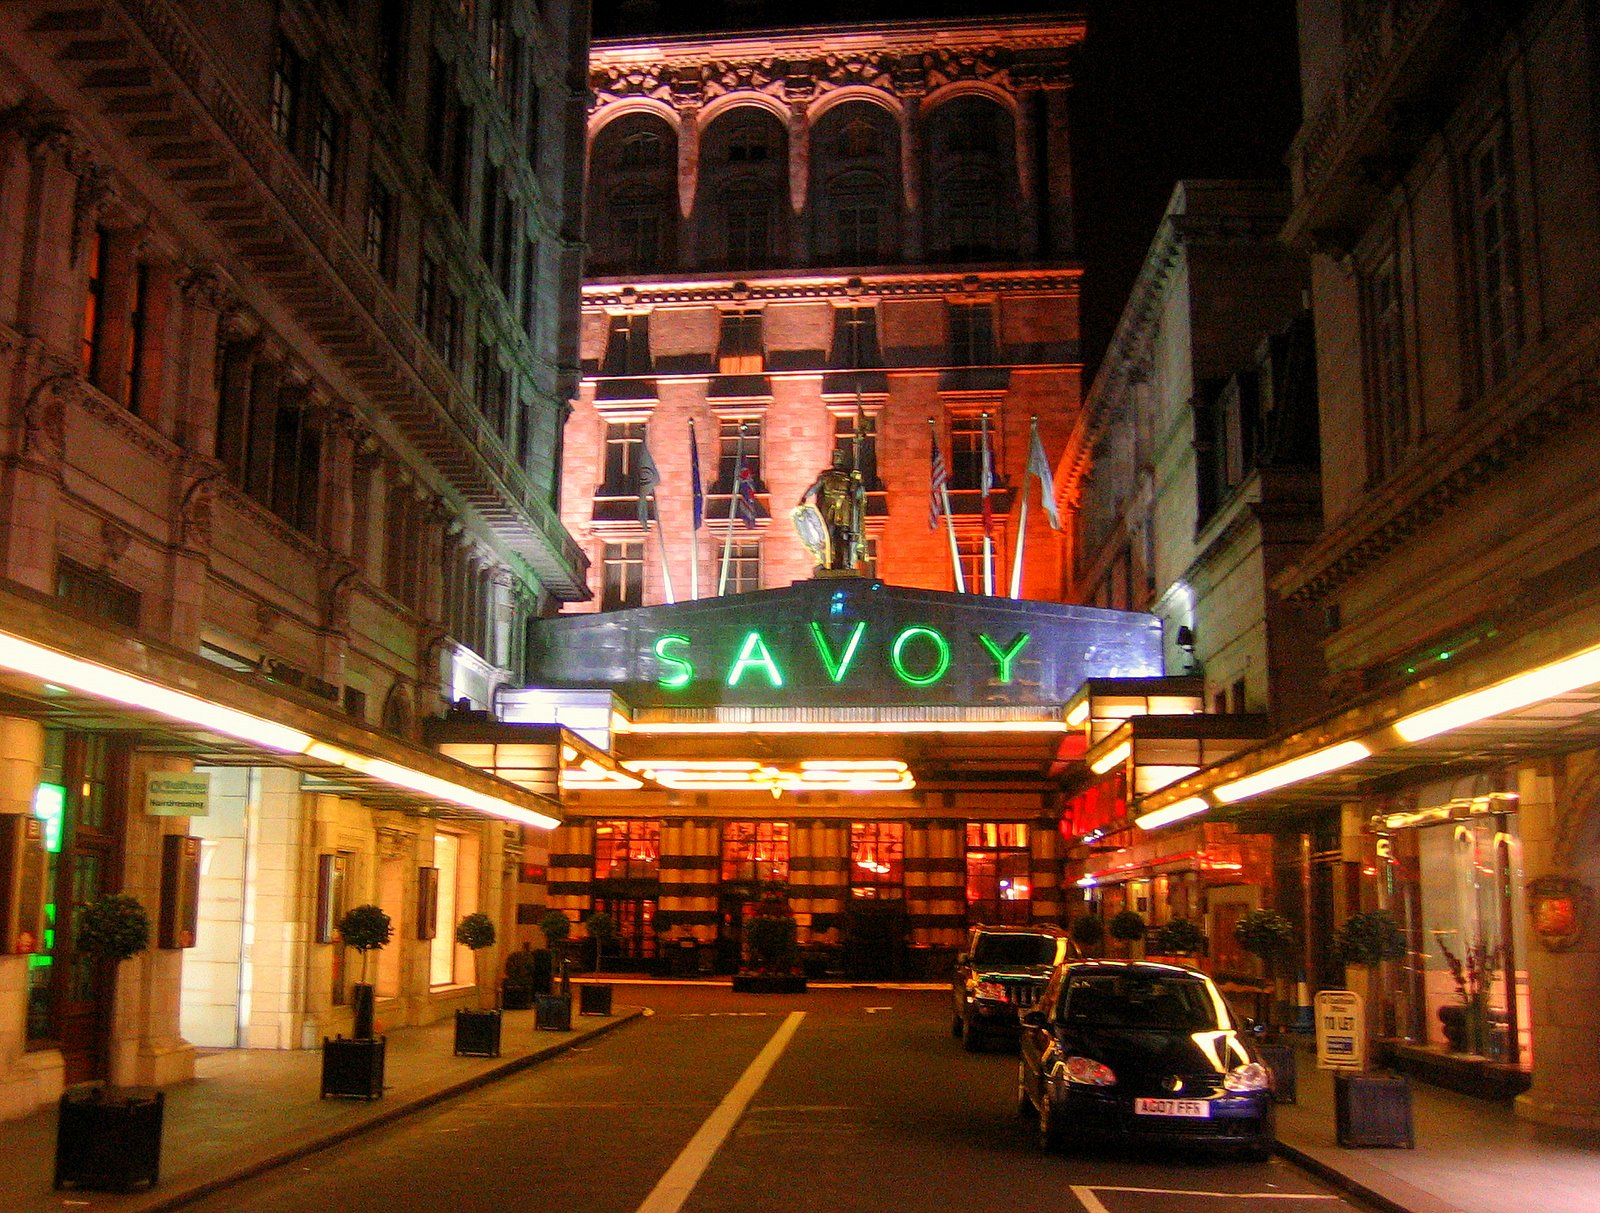 savoy girls Let your soul sing with the dazzling multi-award winning dreamgirls at the savoy theatre, london with an extraordinary story and the unforgettable vocals that are sending audiences wild at every single show, this spectacular musical production soars with the classic songs such as 'and i am telling you i'm not going'.